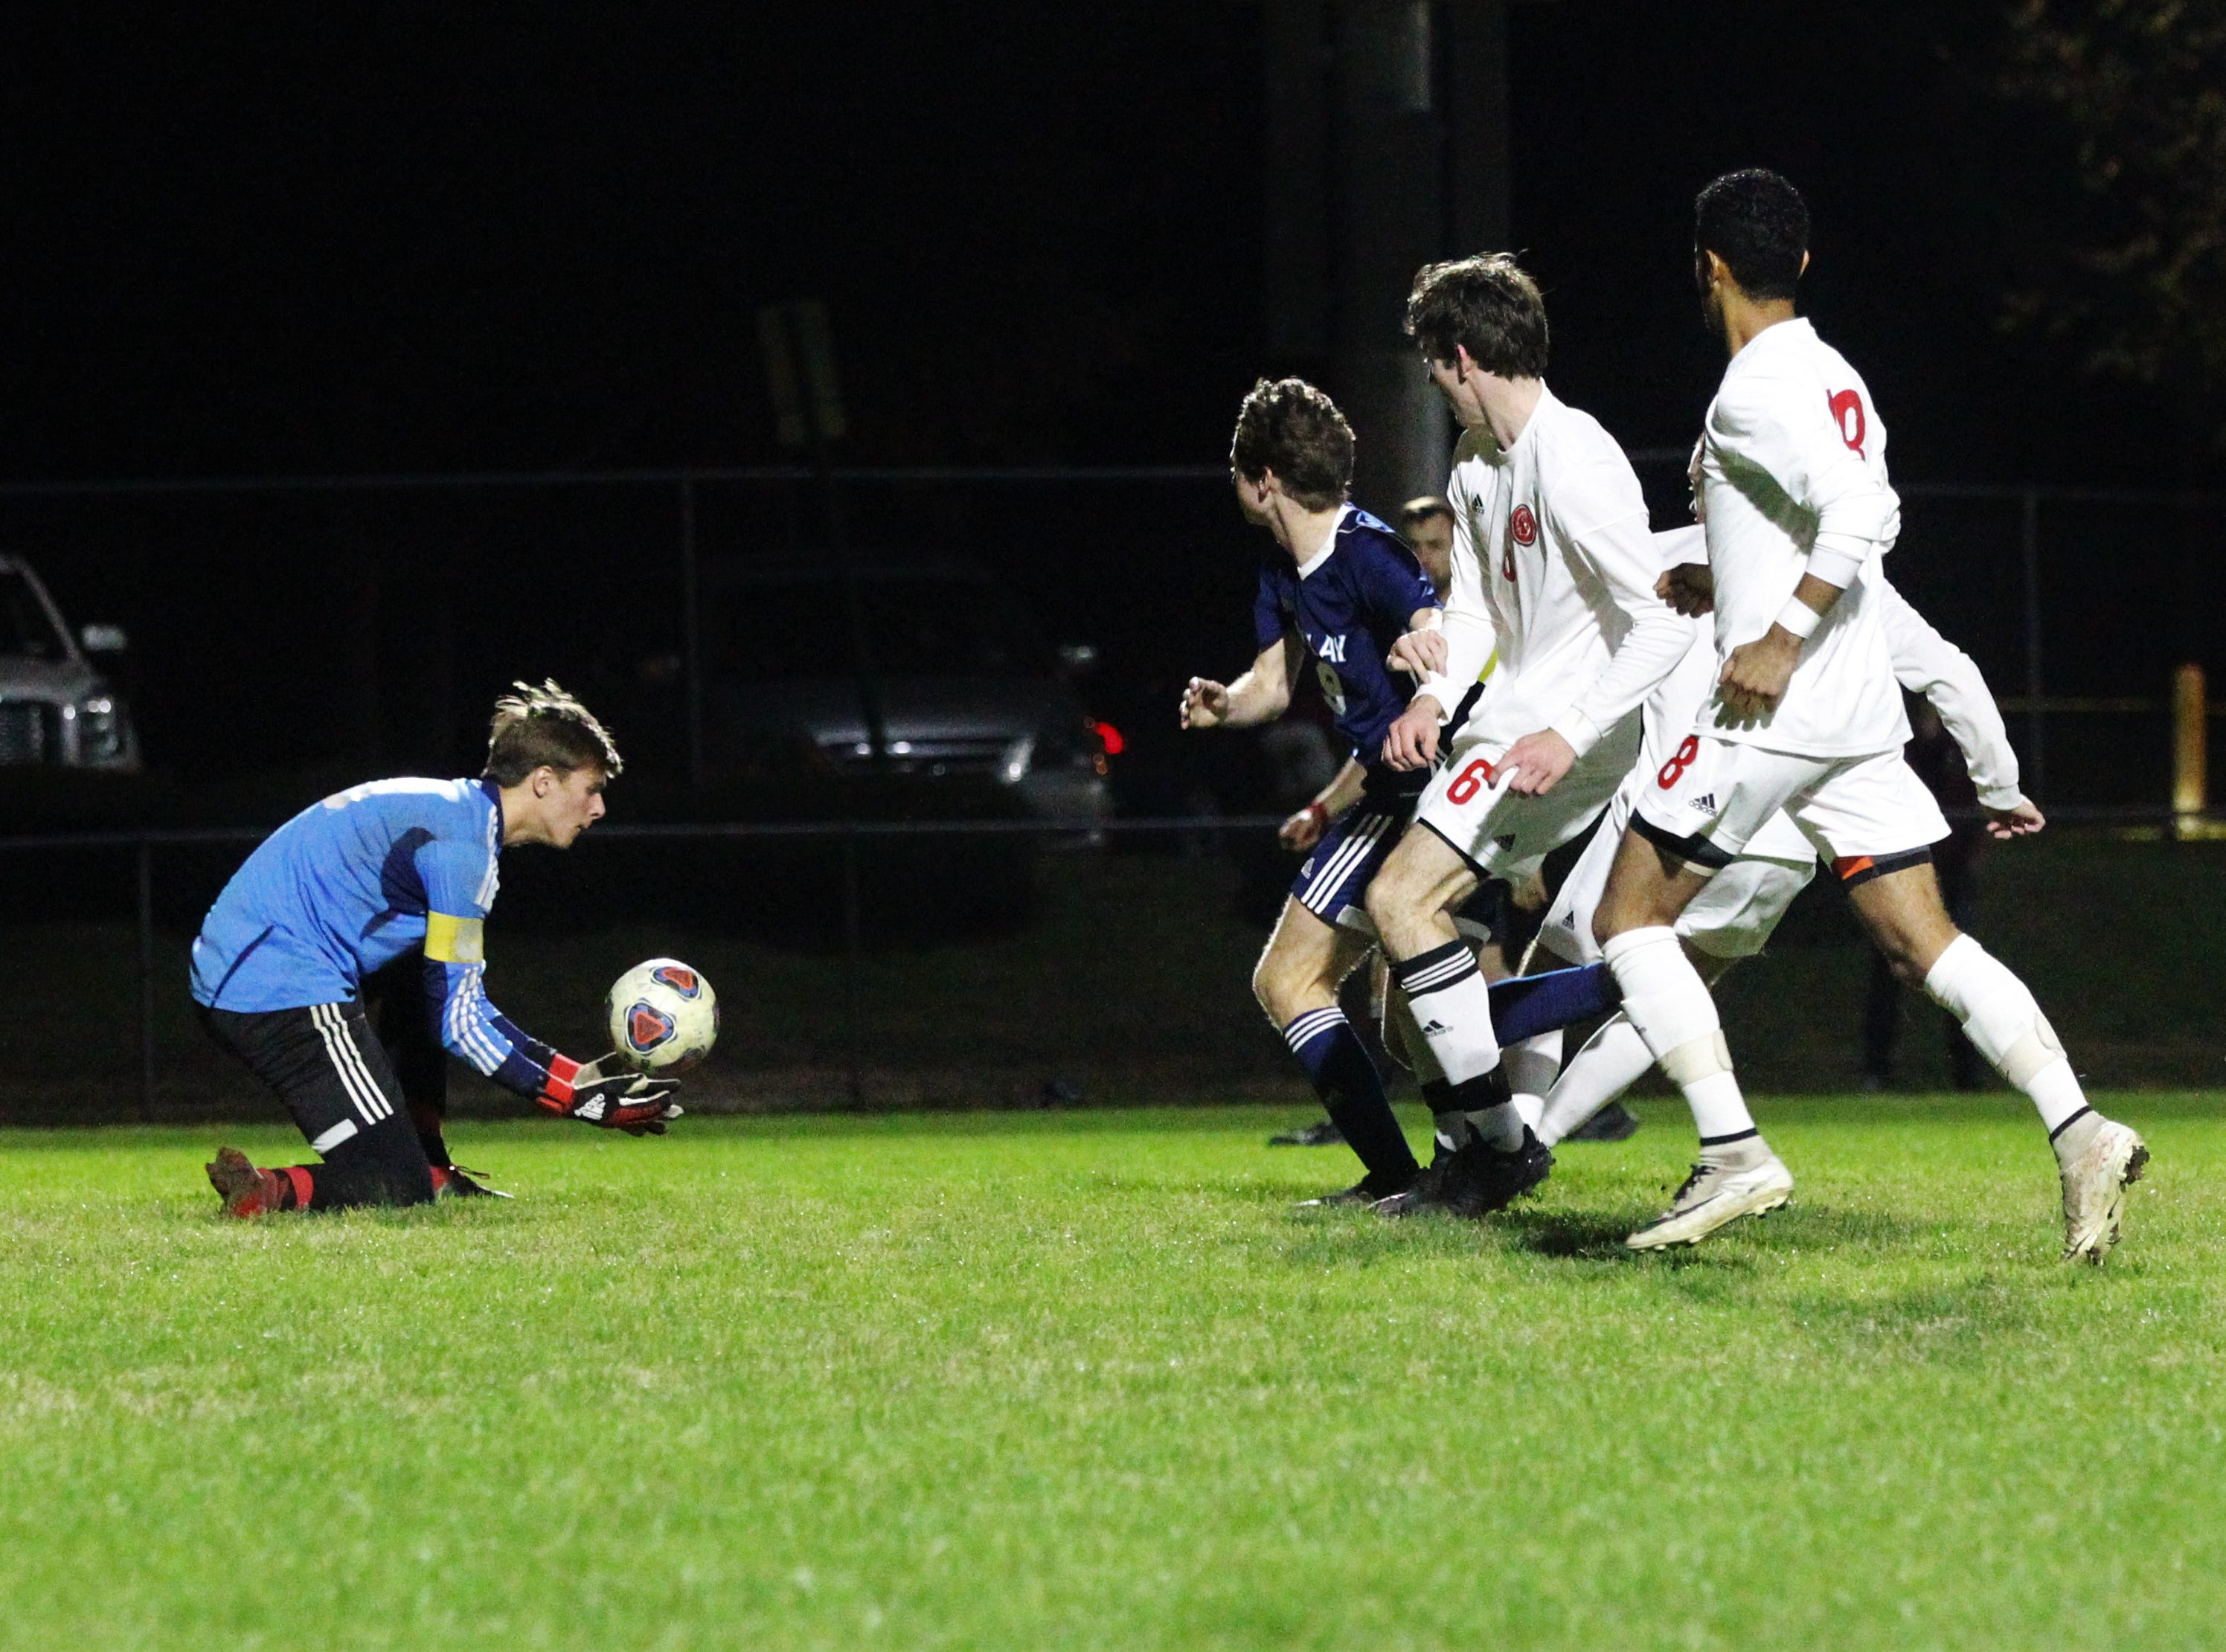 Leon goalie Sam Schaefer snags a cross into the box as Leon's boys soccer team beat Maclay 3-1 on Jan. 22, 2019.